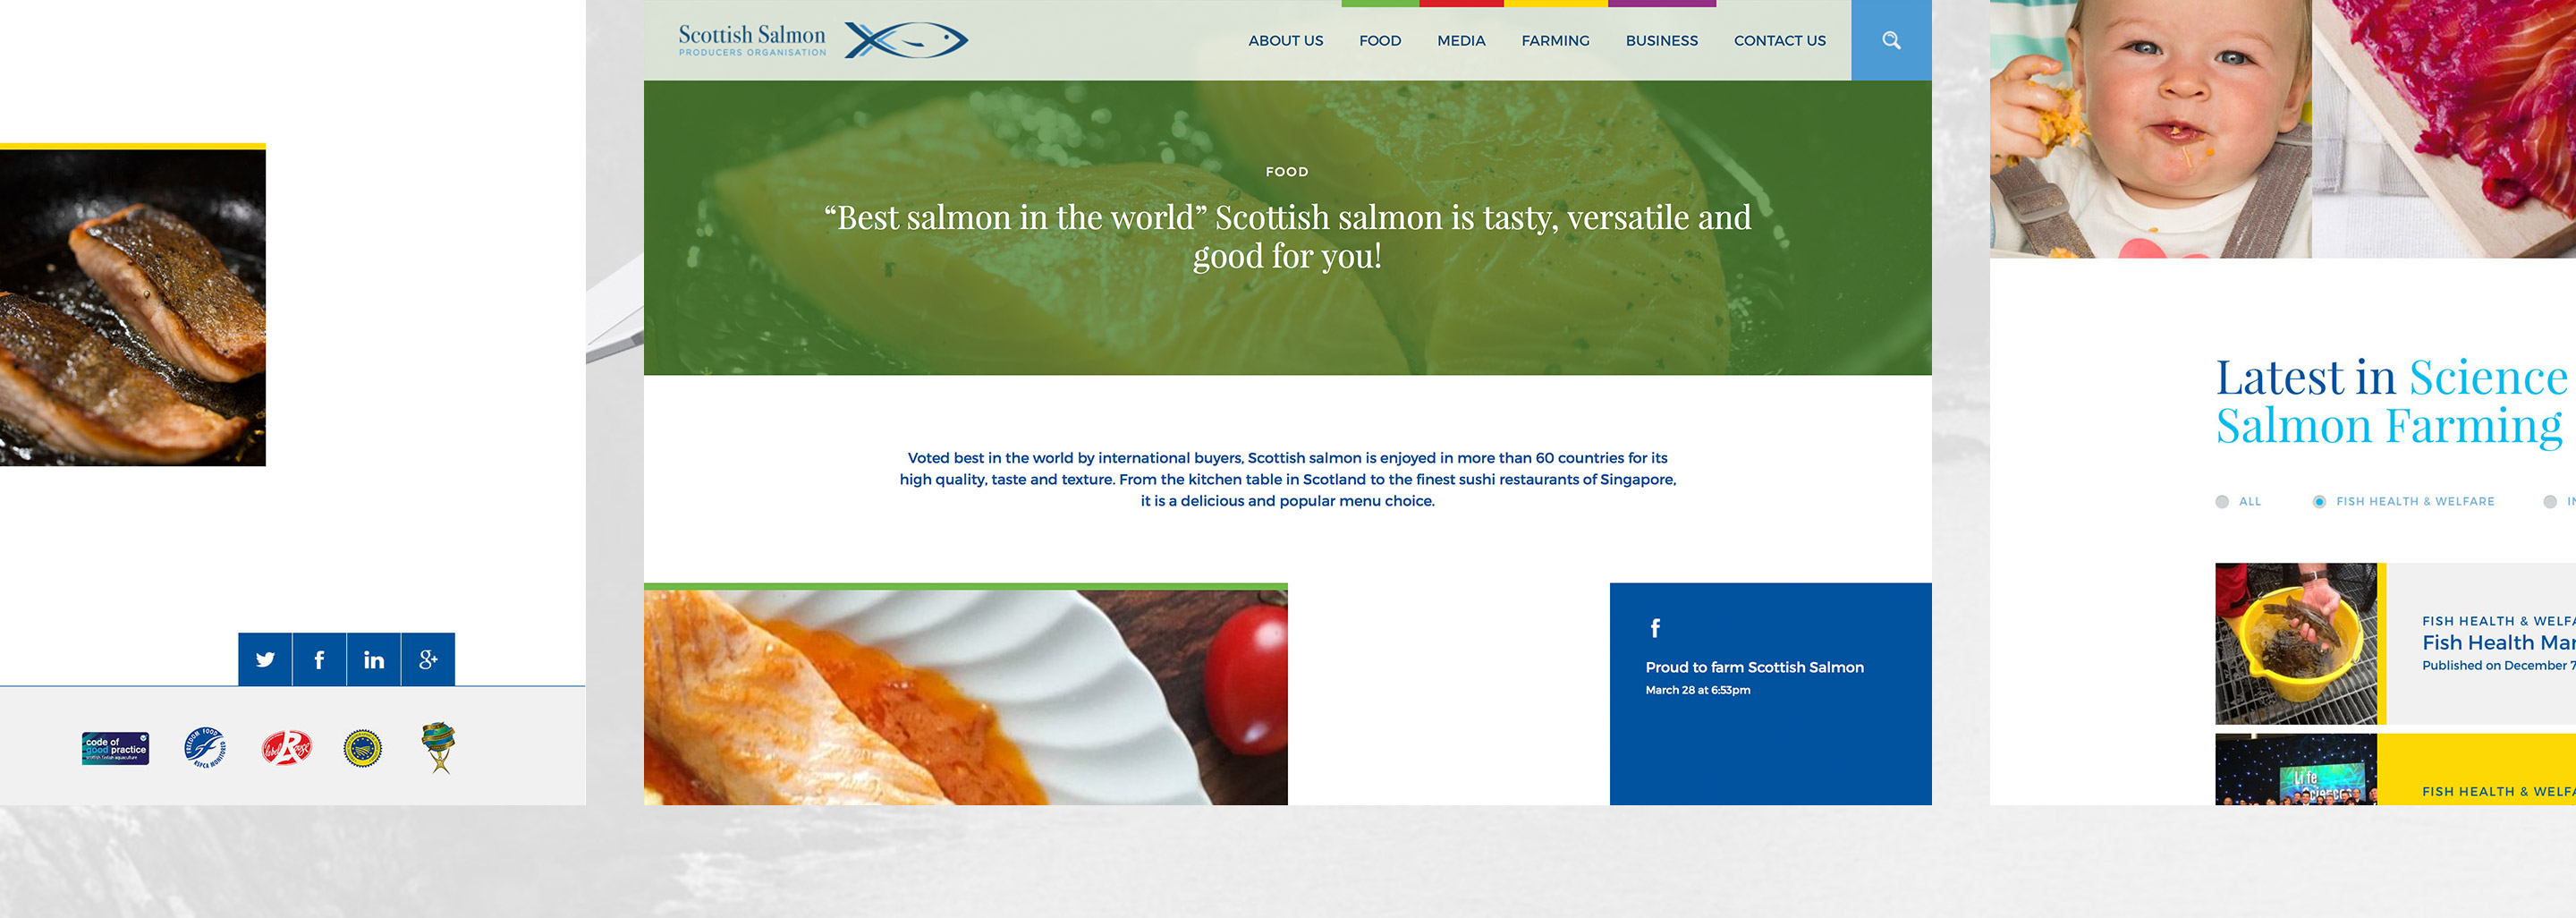 Scottish Salmon Producers Organisation responsive website